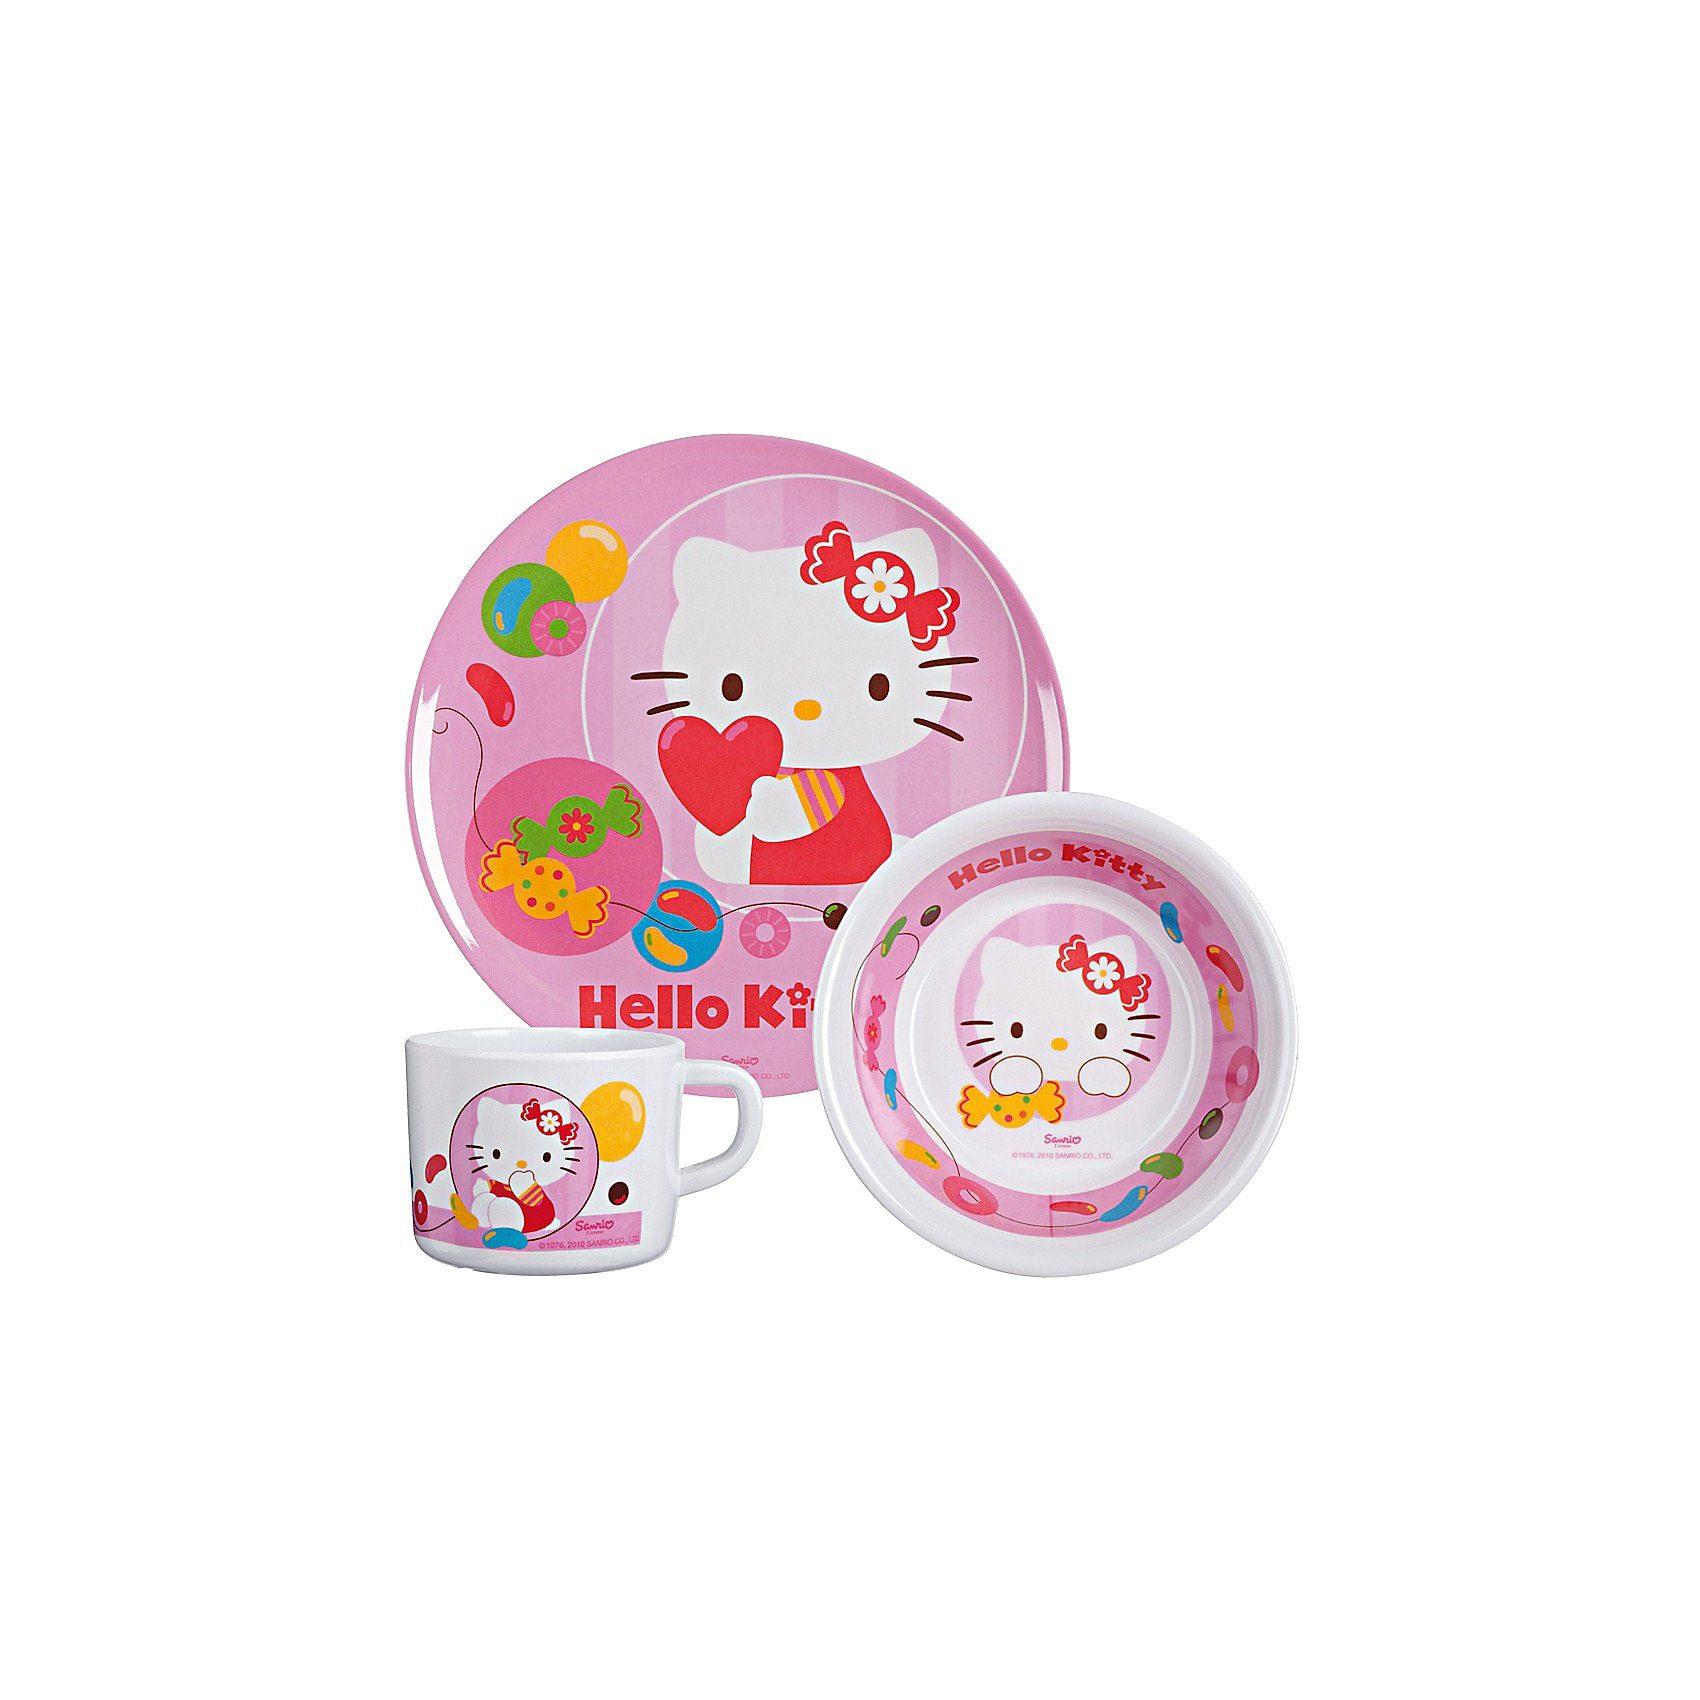 p:os Kindergeschirr Melamin Hello Kitty Jelly Beans, 3-tlg.